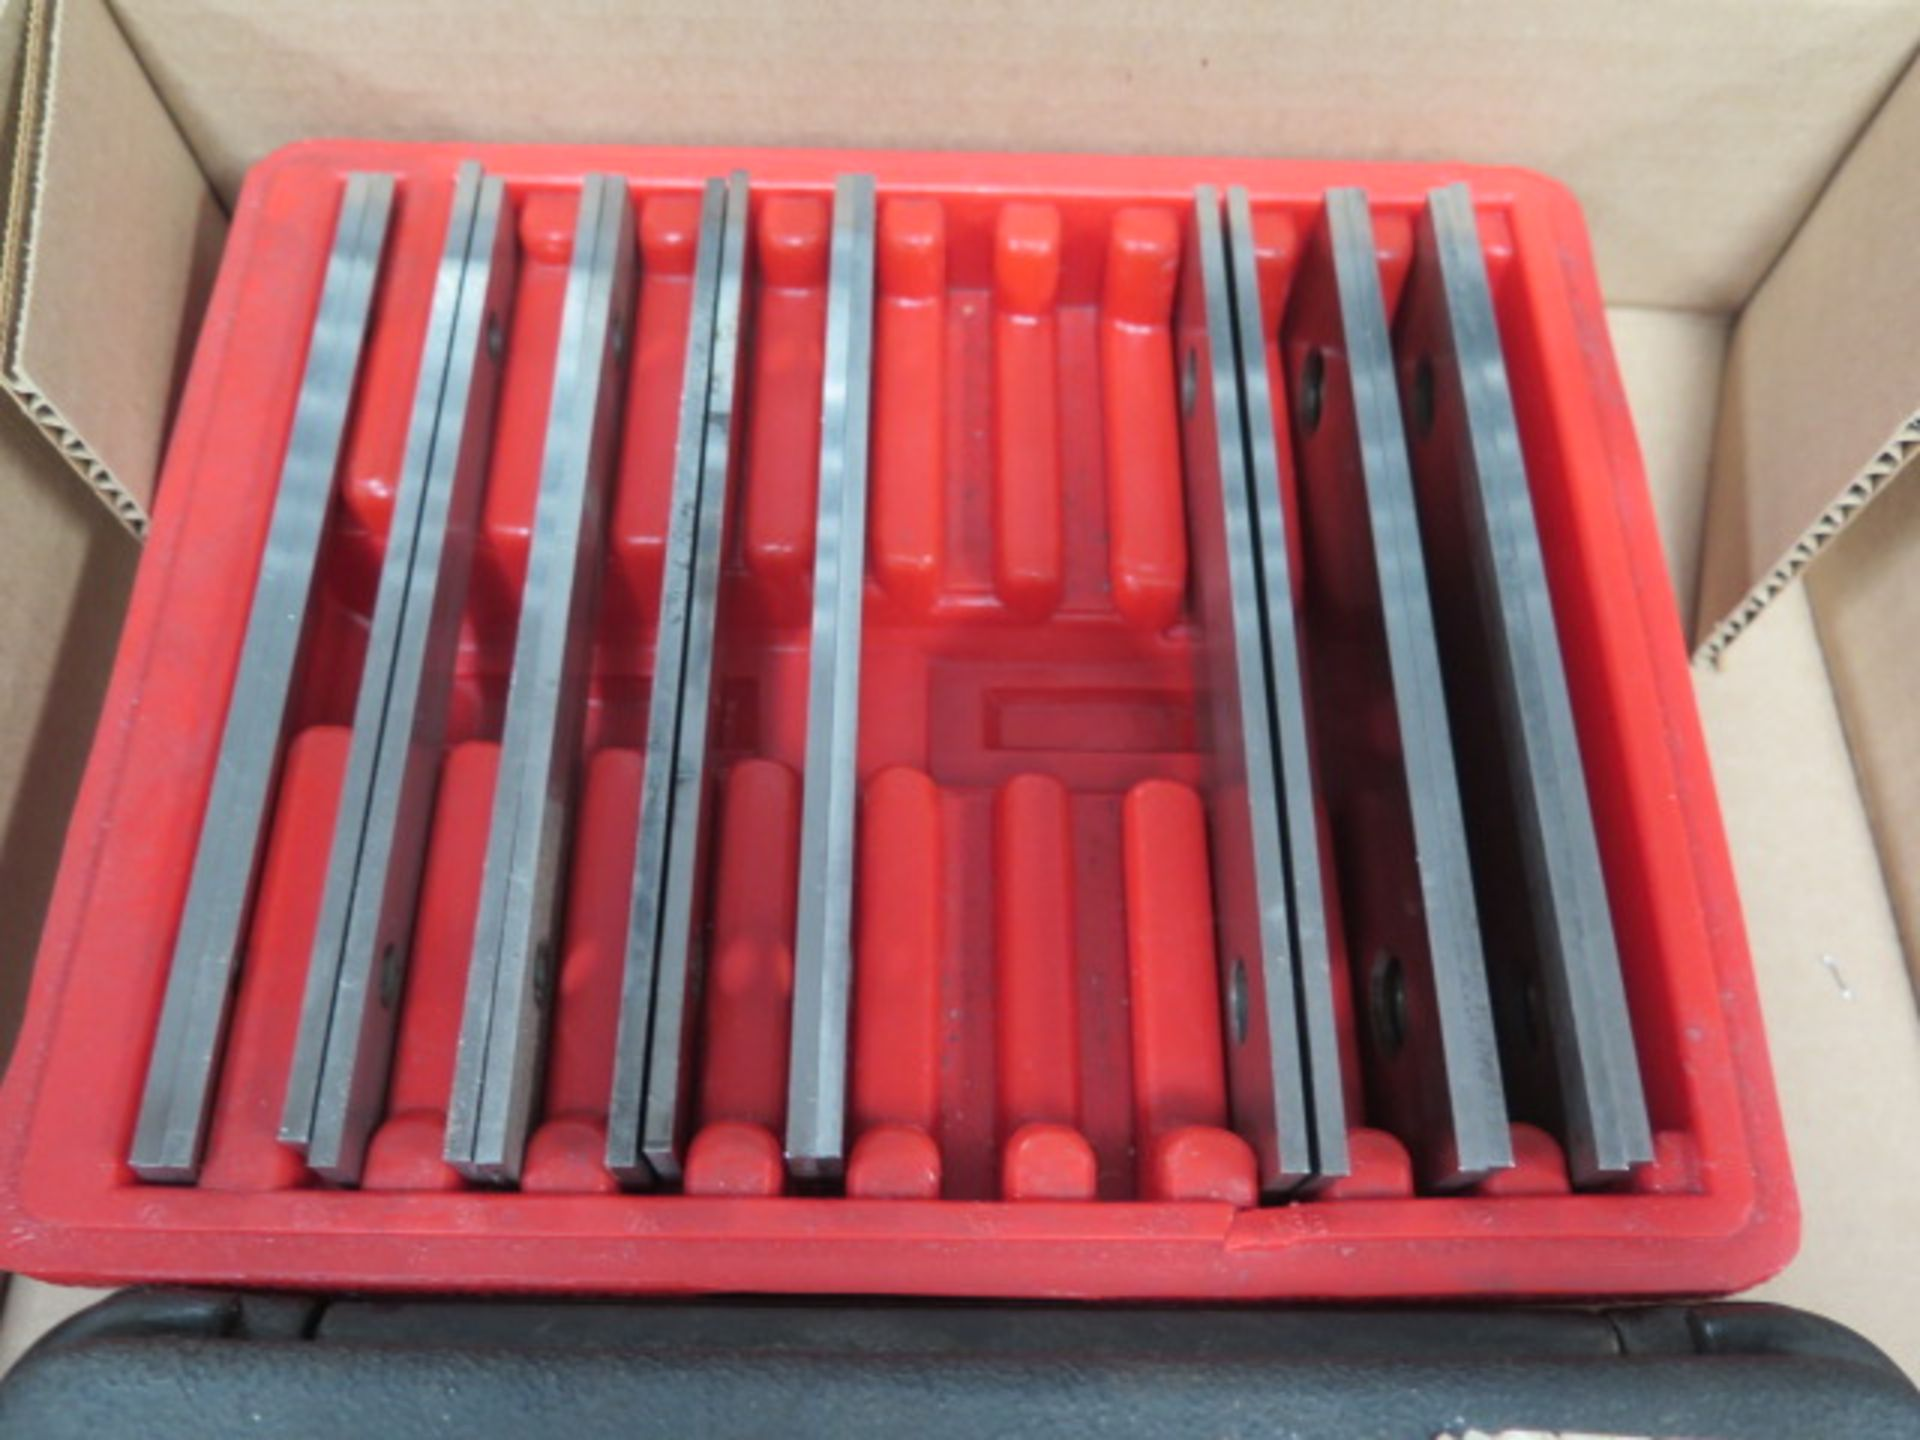 Parallel Sets (4-Missing 16 Pcs) (SOLD AS-IS - NO WARRANTY) - Image 5 of 6